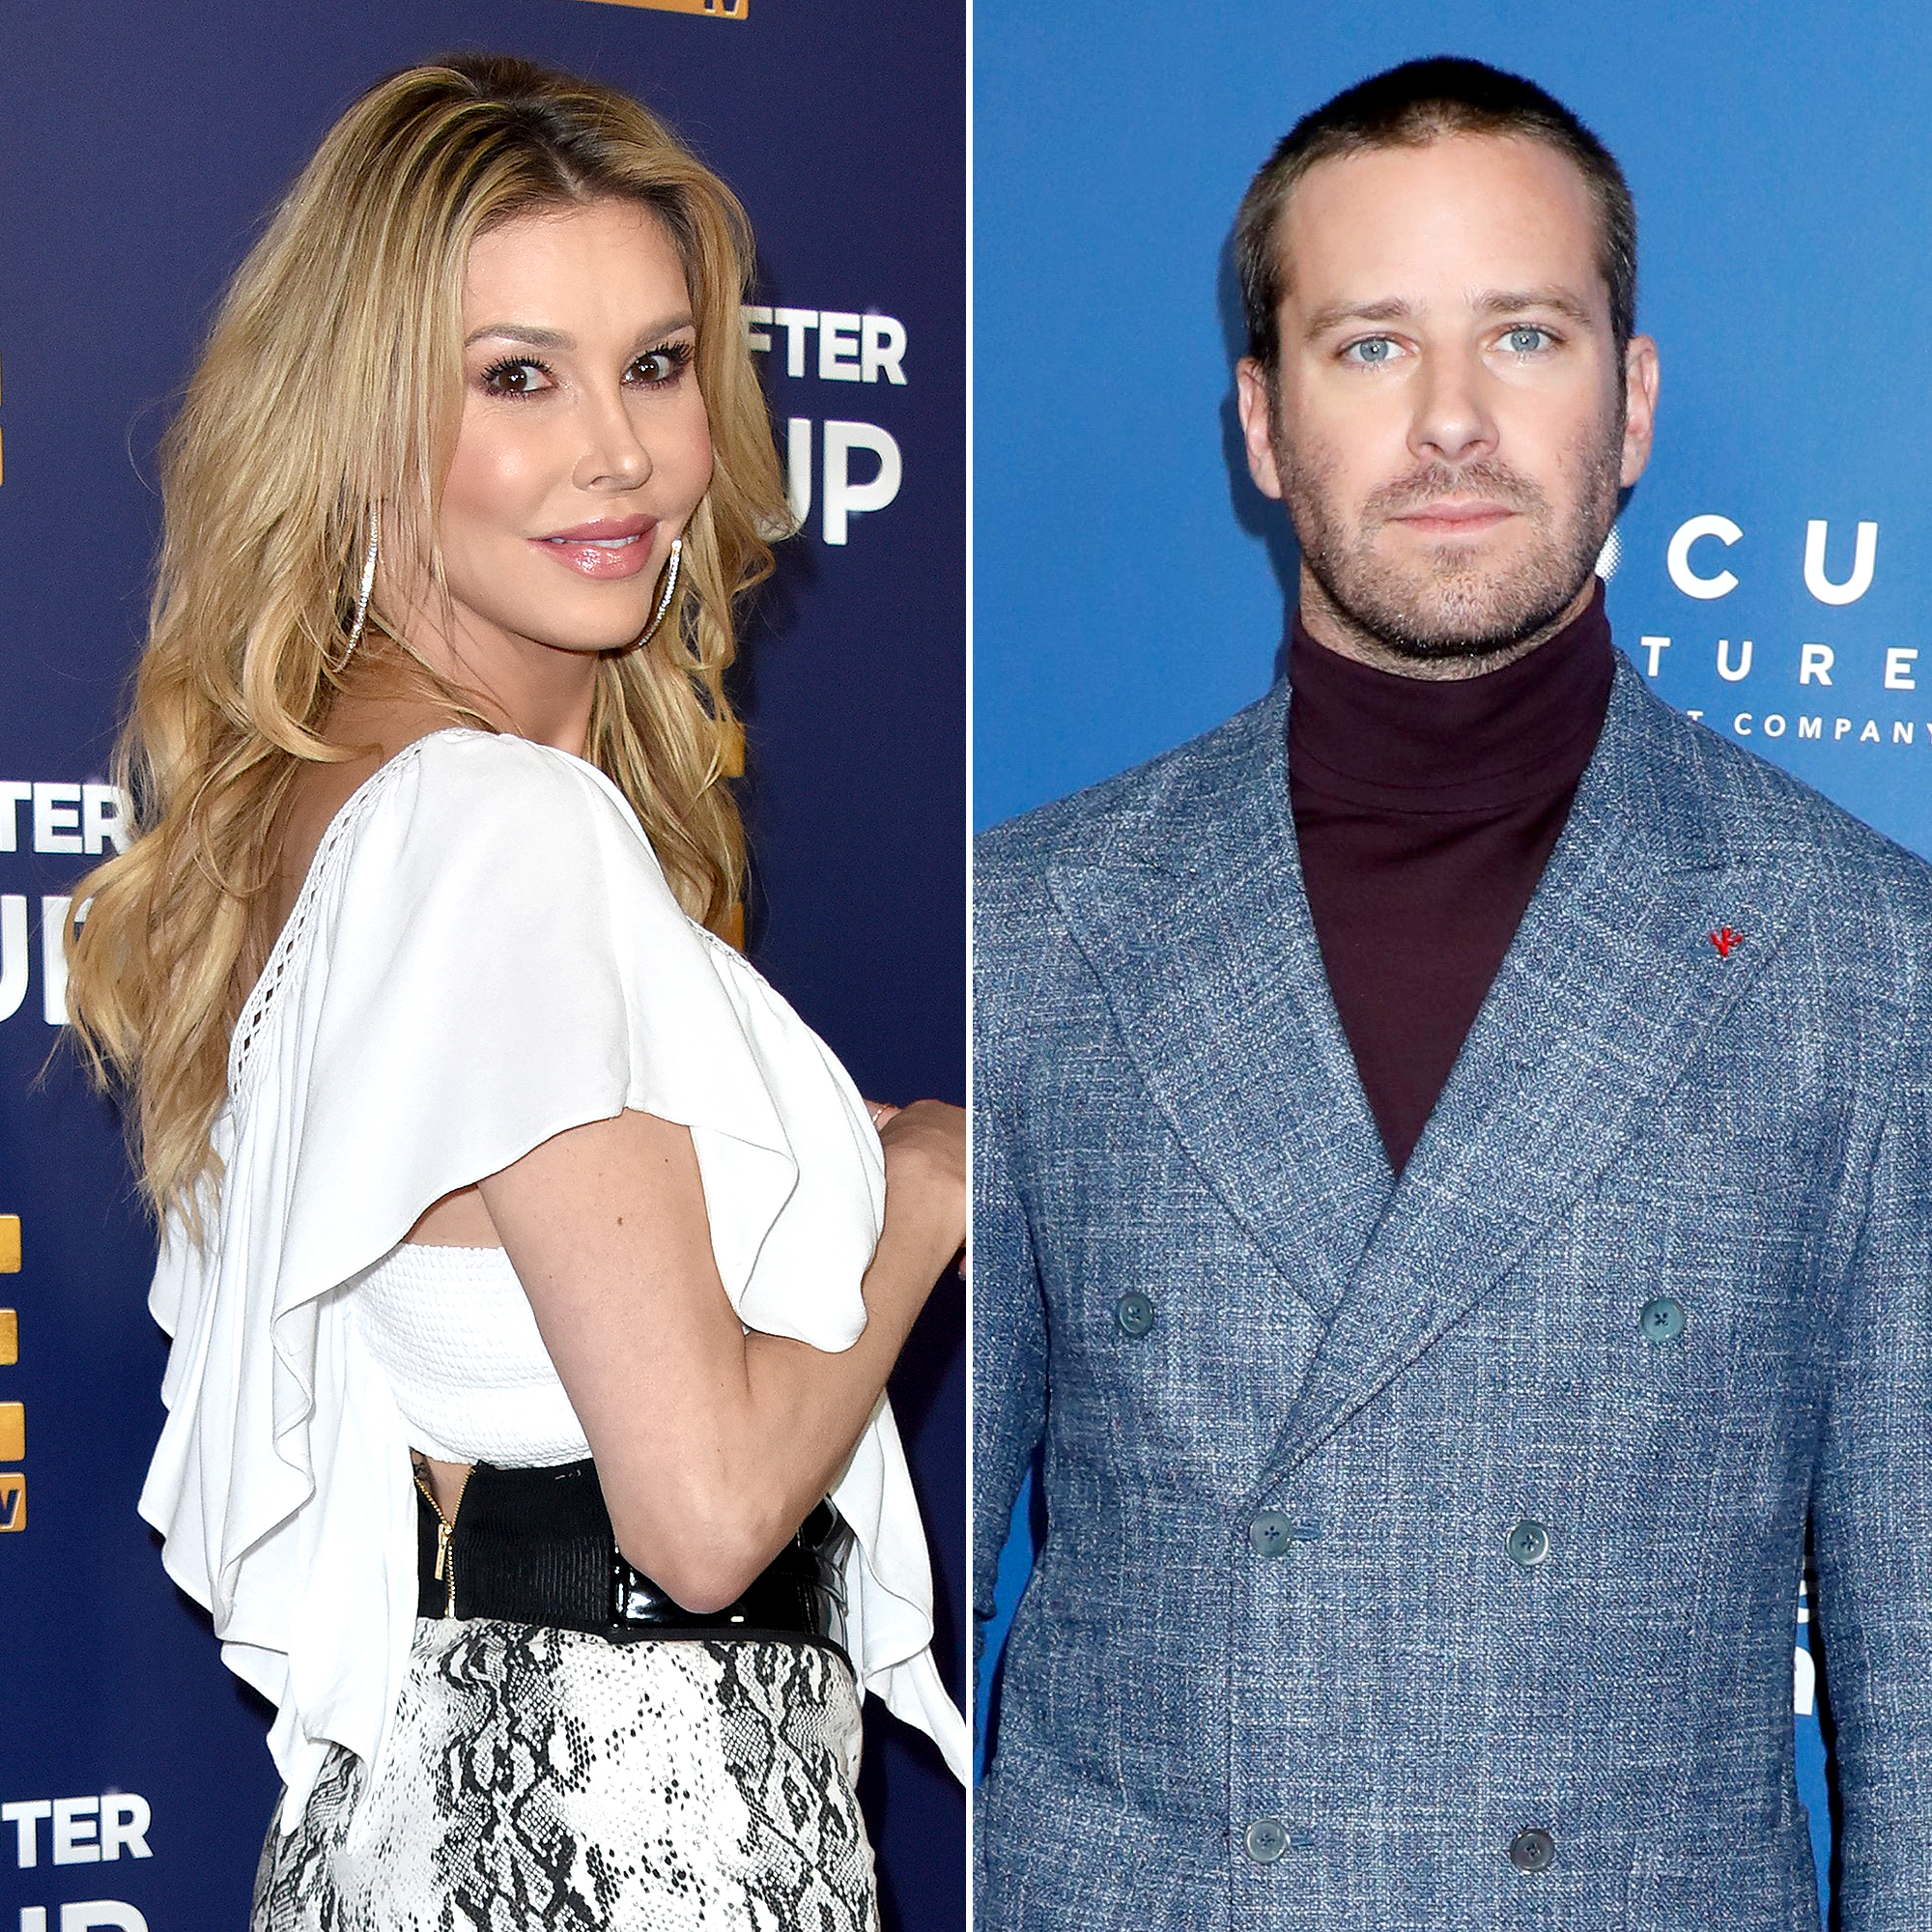 Brandi Glanville Faces Major Backlash After Tweeting Armie Hammer Can Have Her Rib Cage